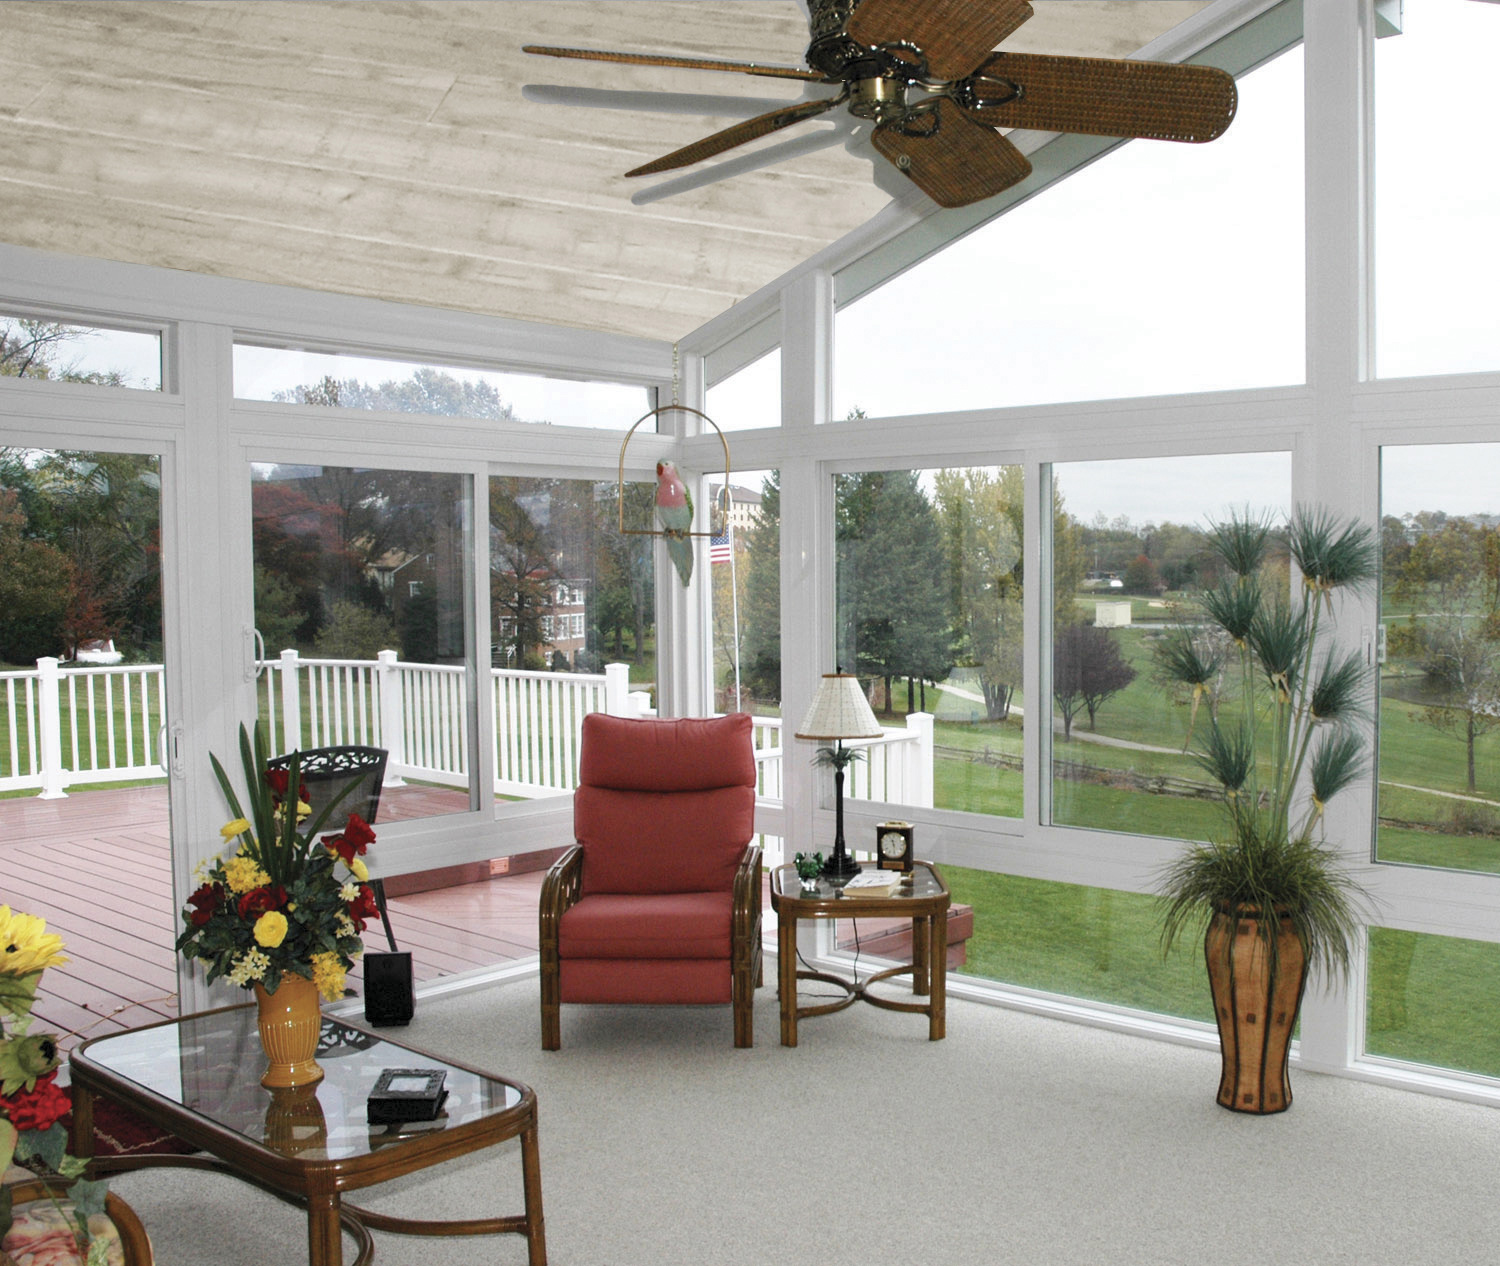 Four Season Sunrooms From Betterliving